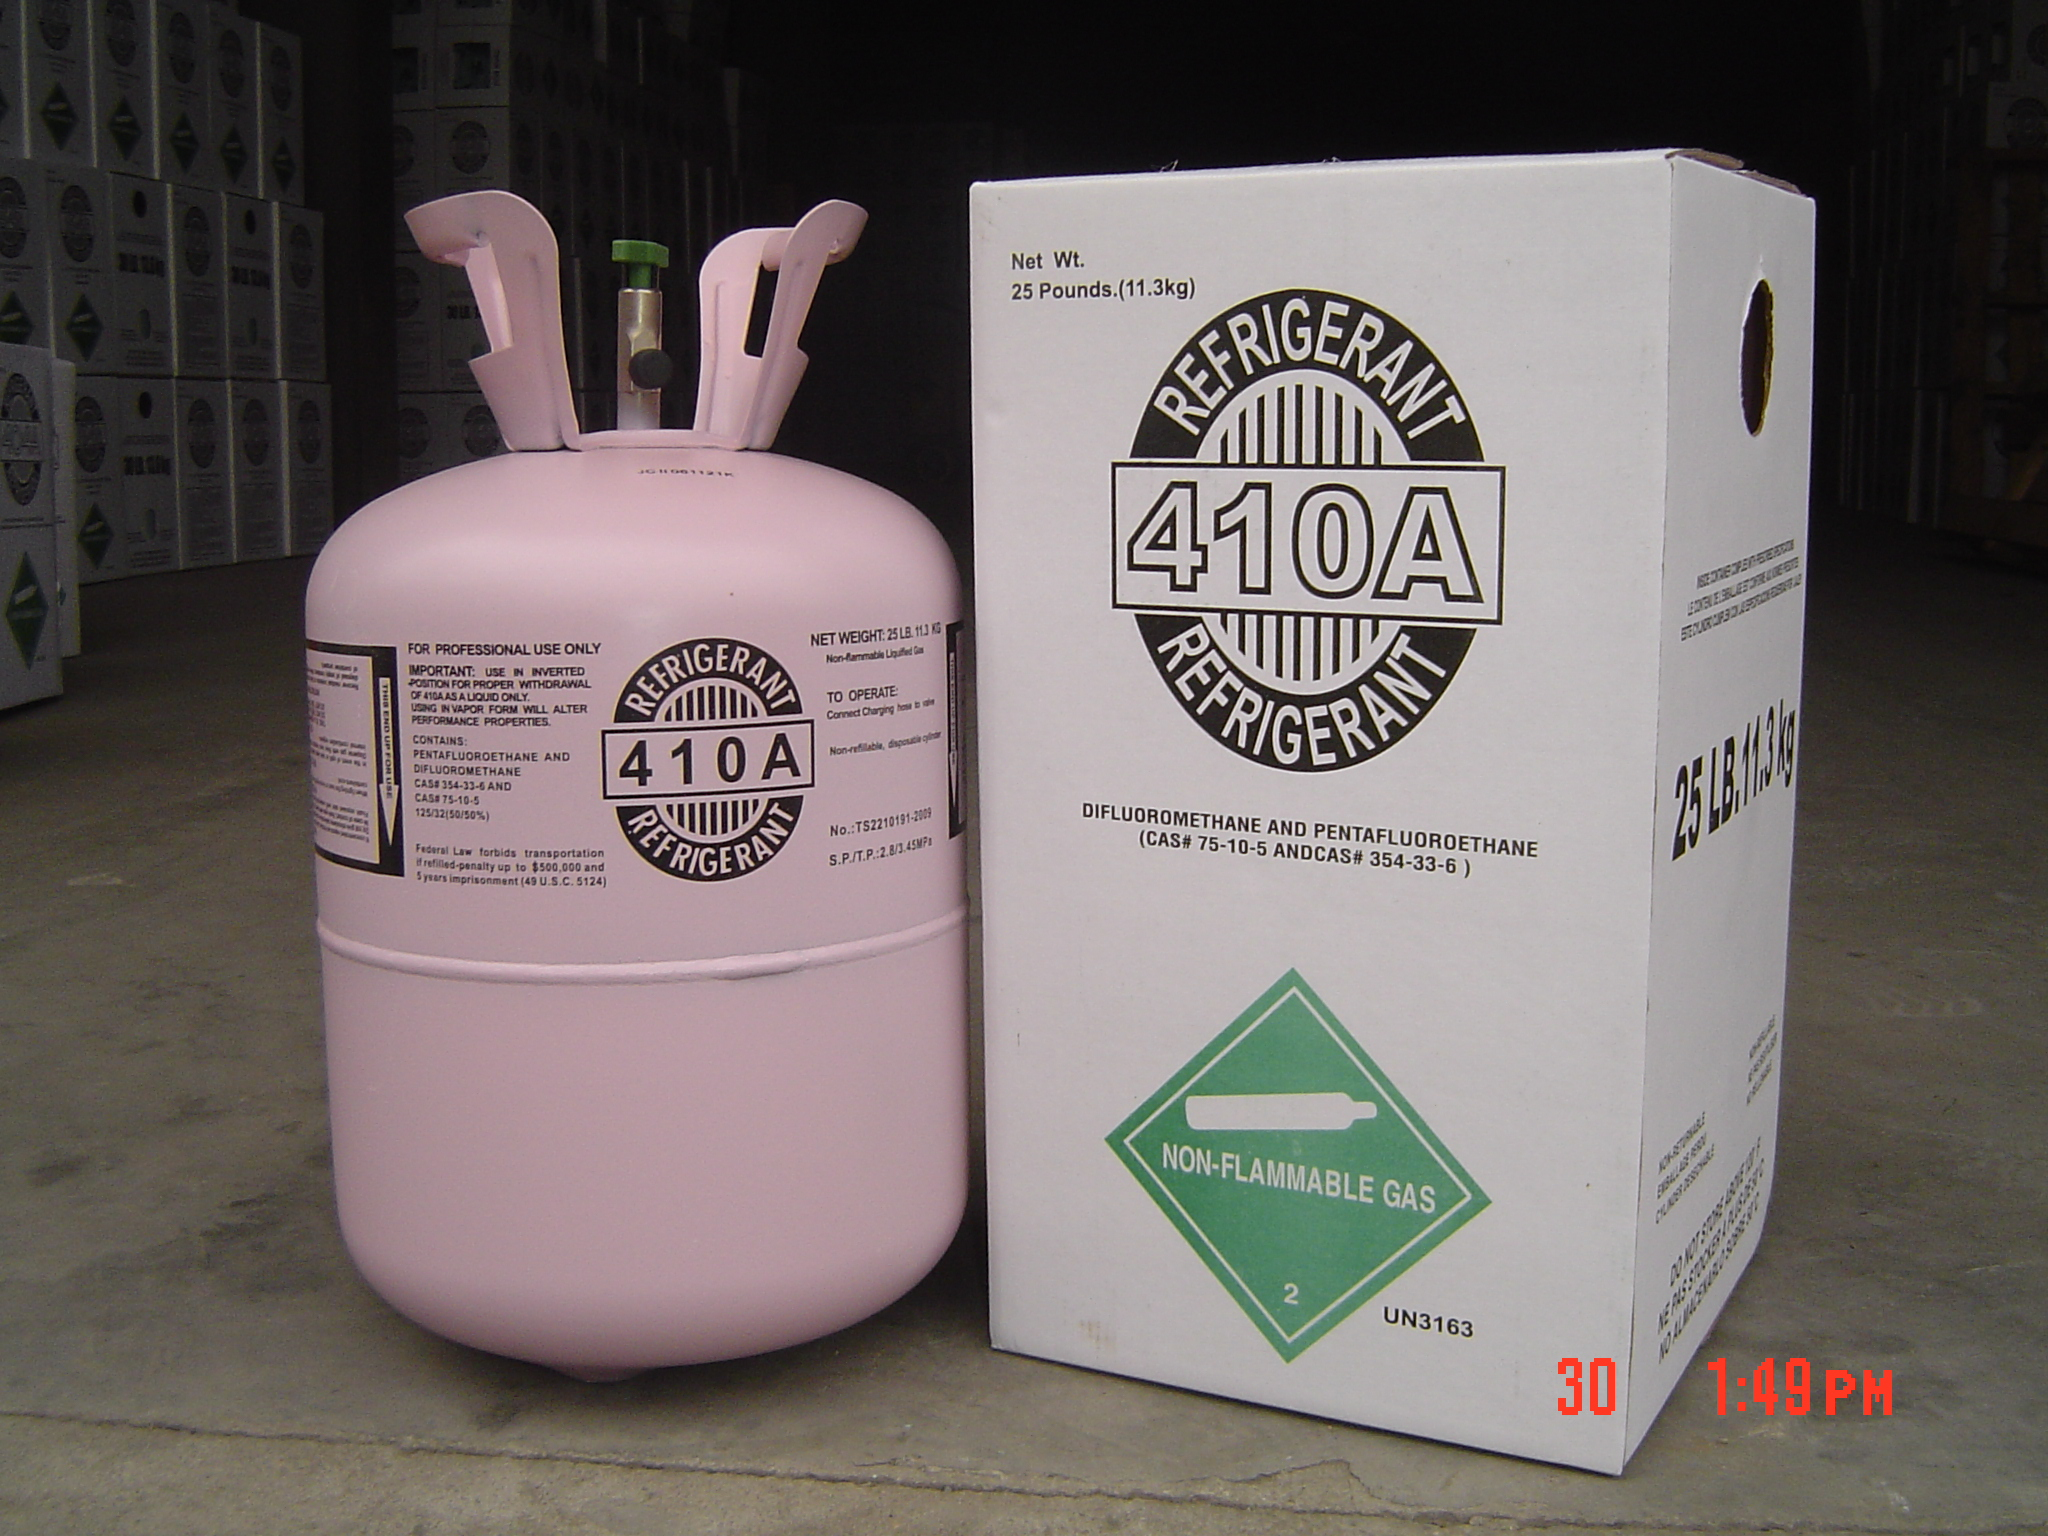 R410a Gas in Disposable Cyl